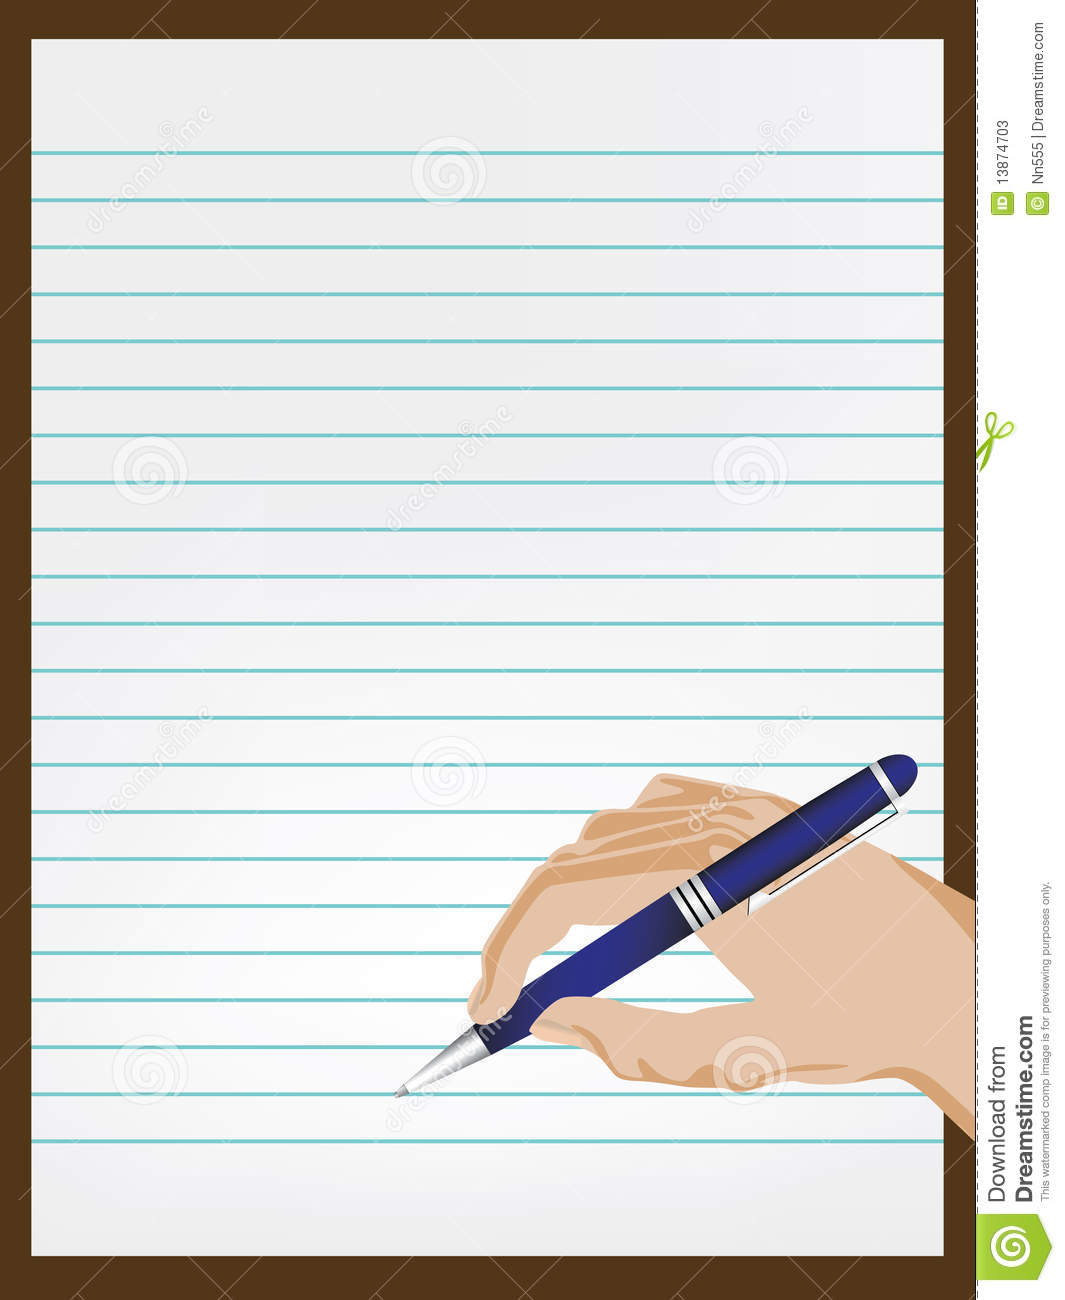 hand writing on paper stock vector. illustration of hold - 13874703